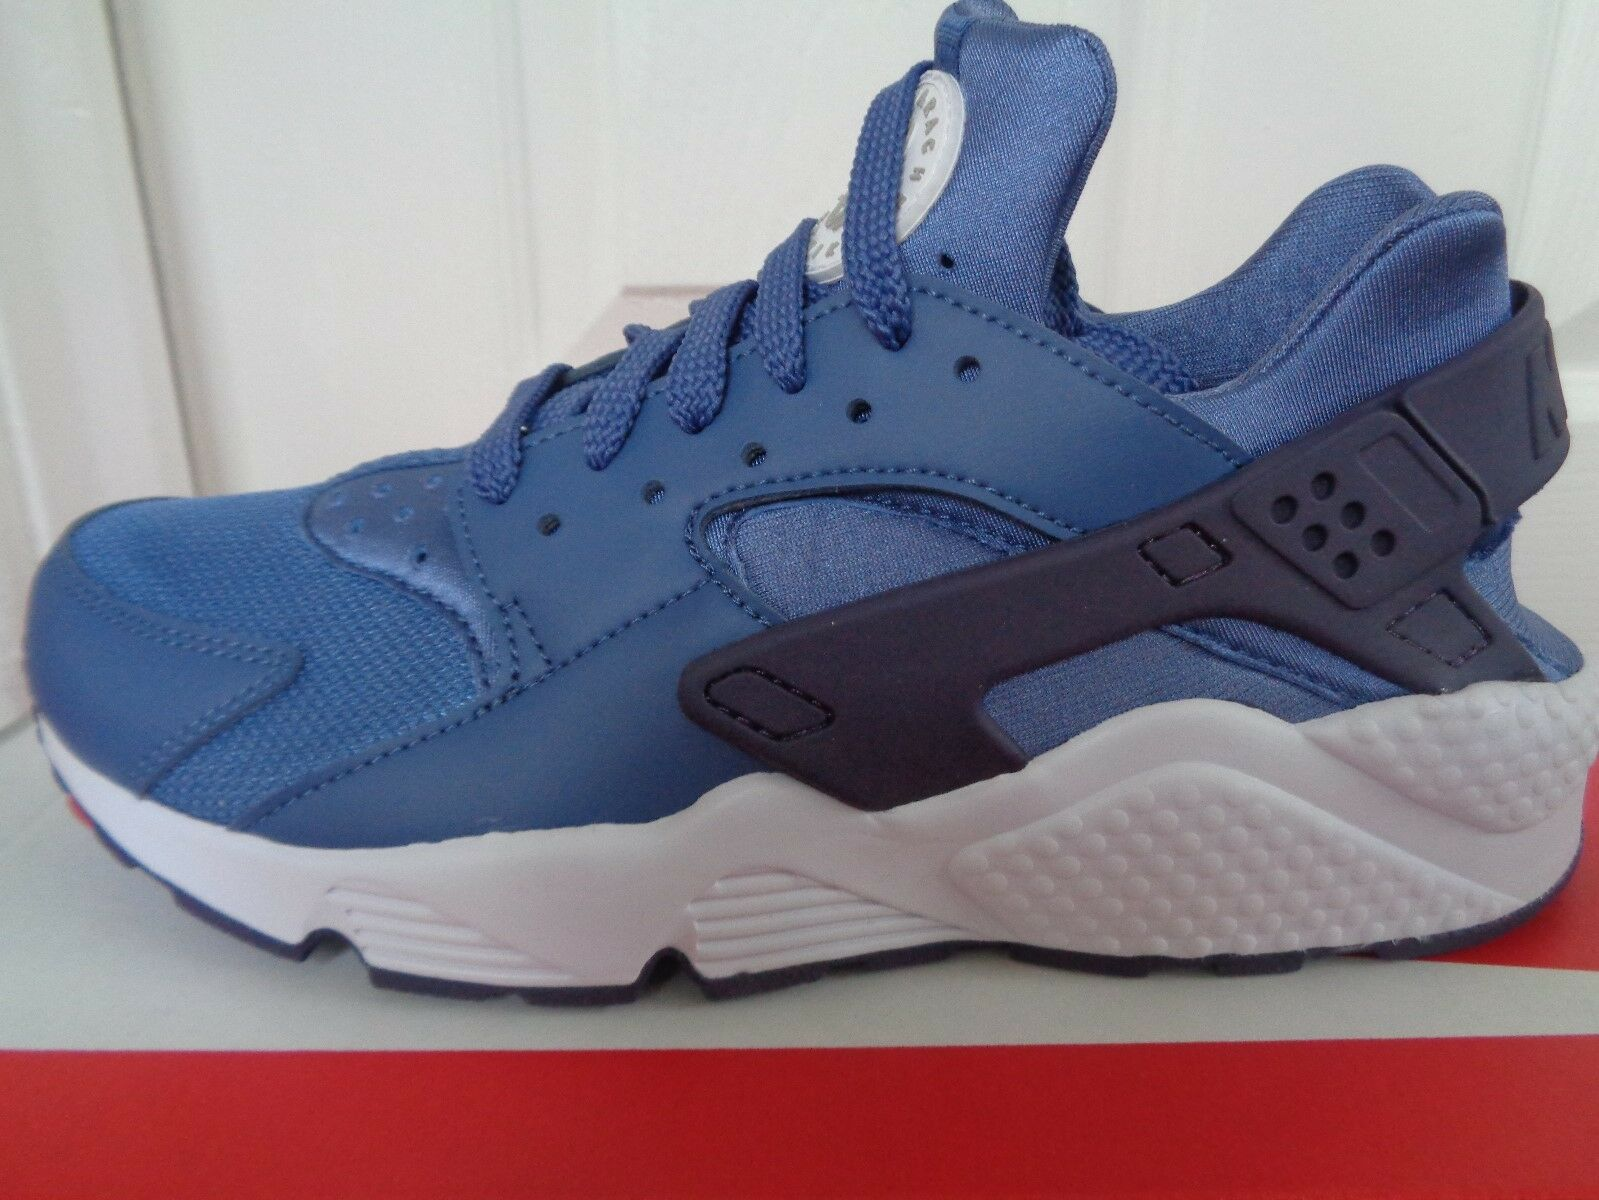 Nike Air Huarache homme  trainers Baskets Baskets Baskets 318429 414 uk 7 eu 41 us 8 NEWBOX 27ff46